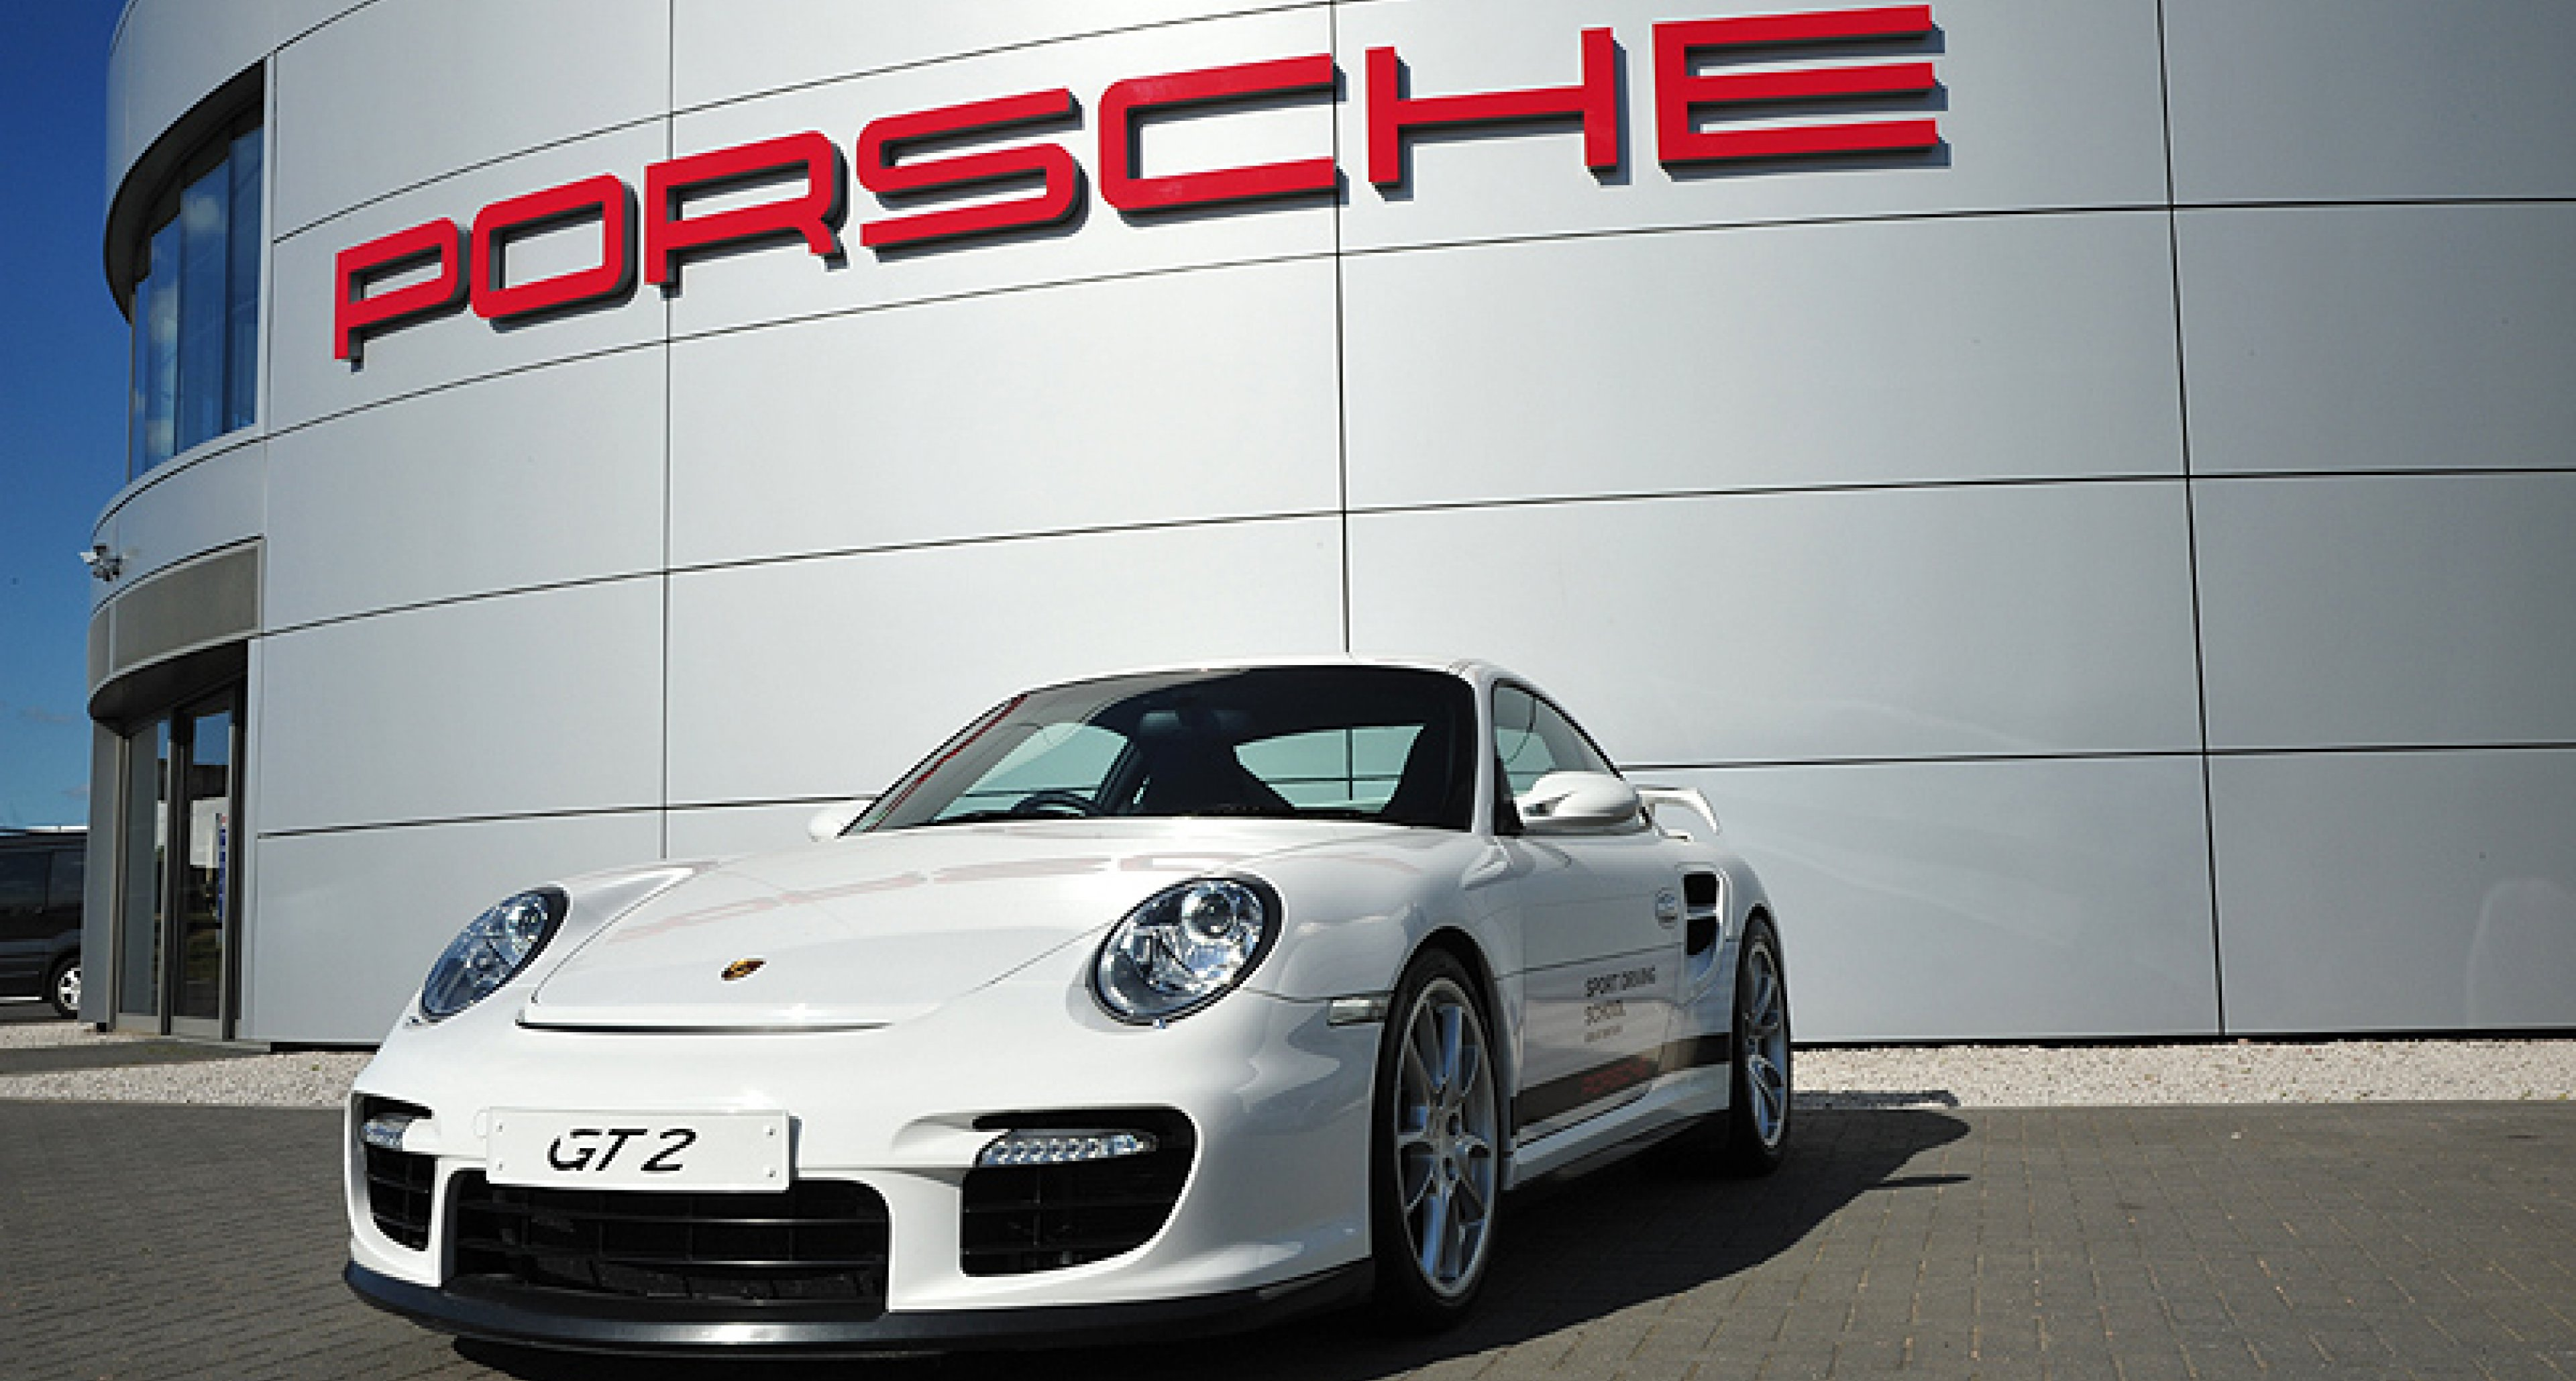 Porsche Experience Centre, Silverstone; 'Evolution 911', the Kick Plate, the Ice Hill and more...